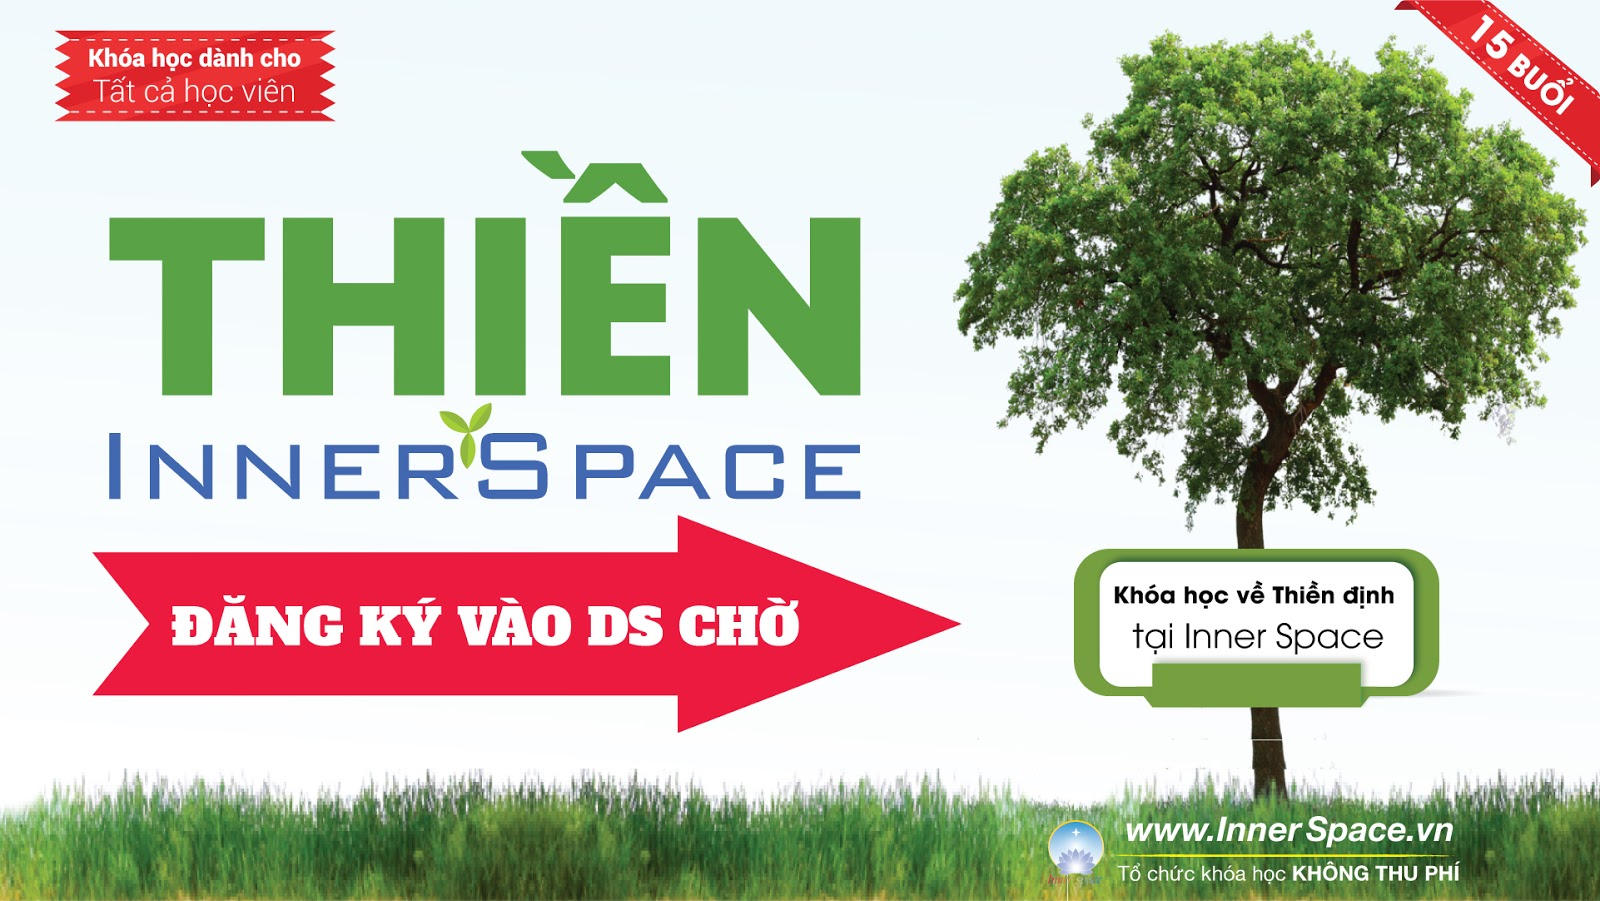 THIEN-INNER-SPACE-TRISH-SUMMERFIELD-VIET-NAM